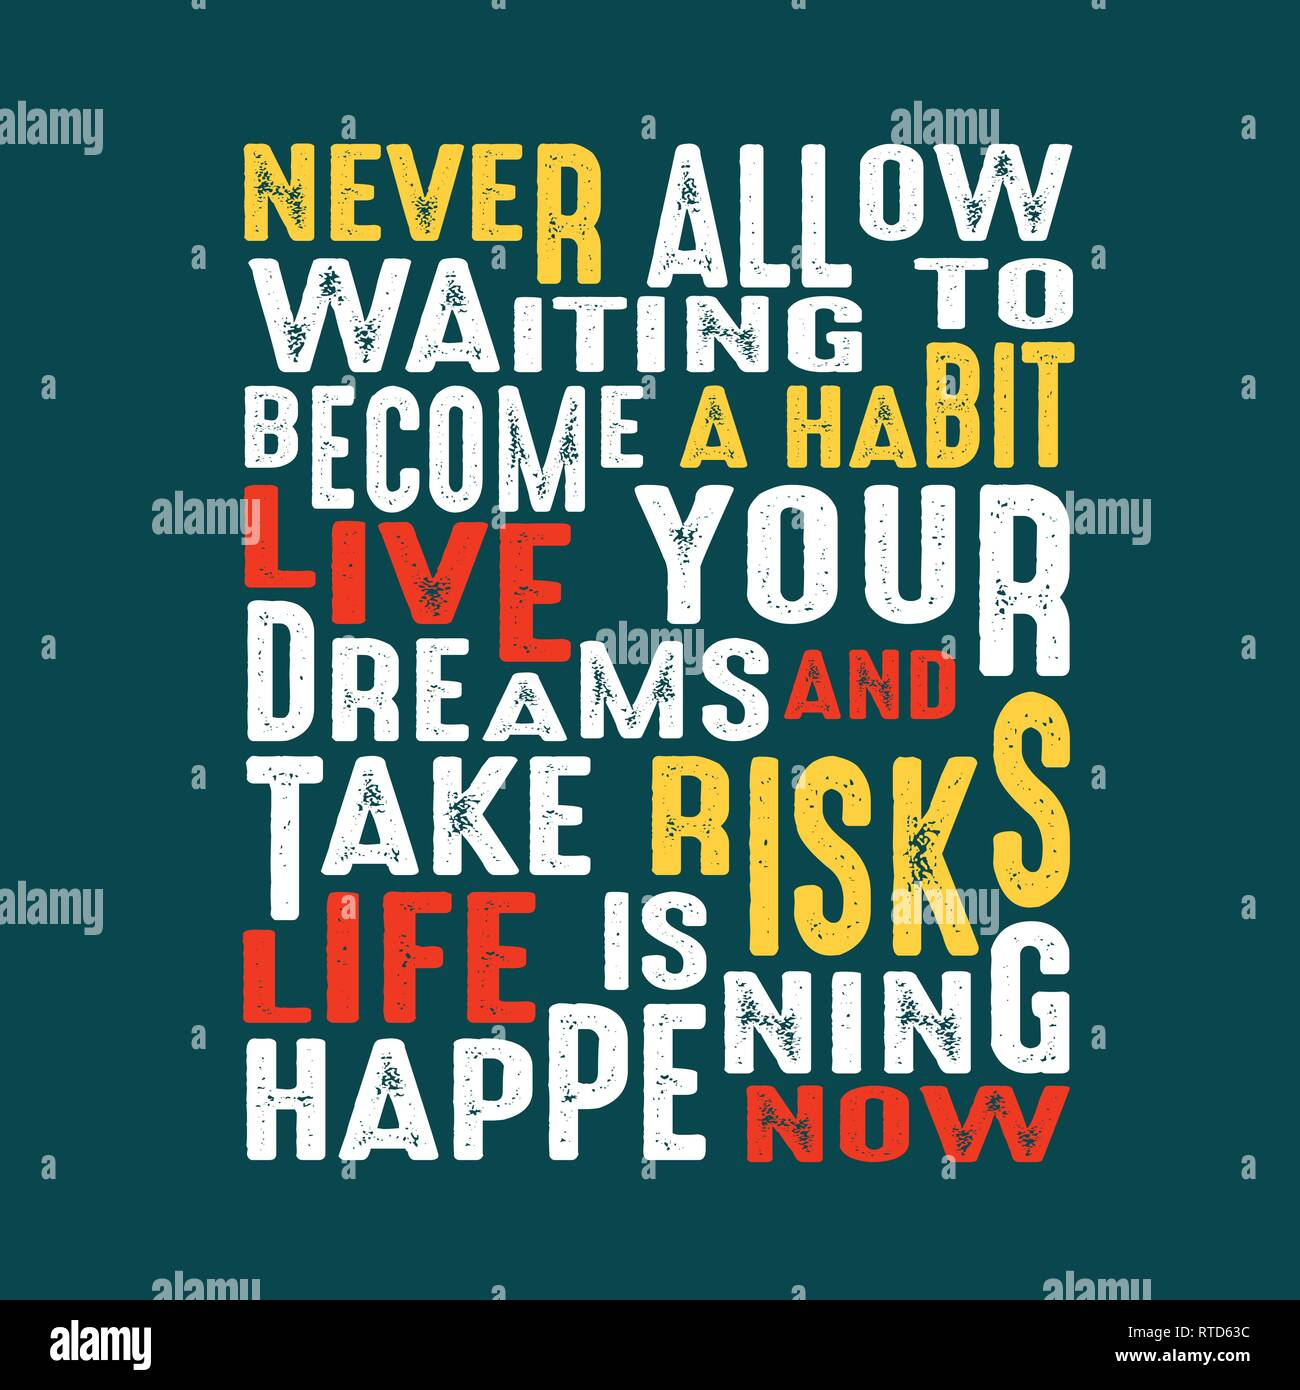 Success Quote. Never allow waiting to become a habit live your dreams and take risks life is happening now. - Stock Image